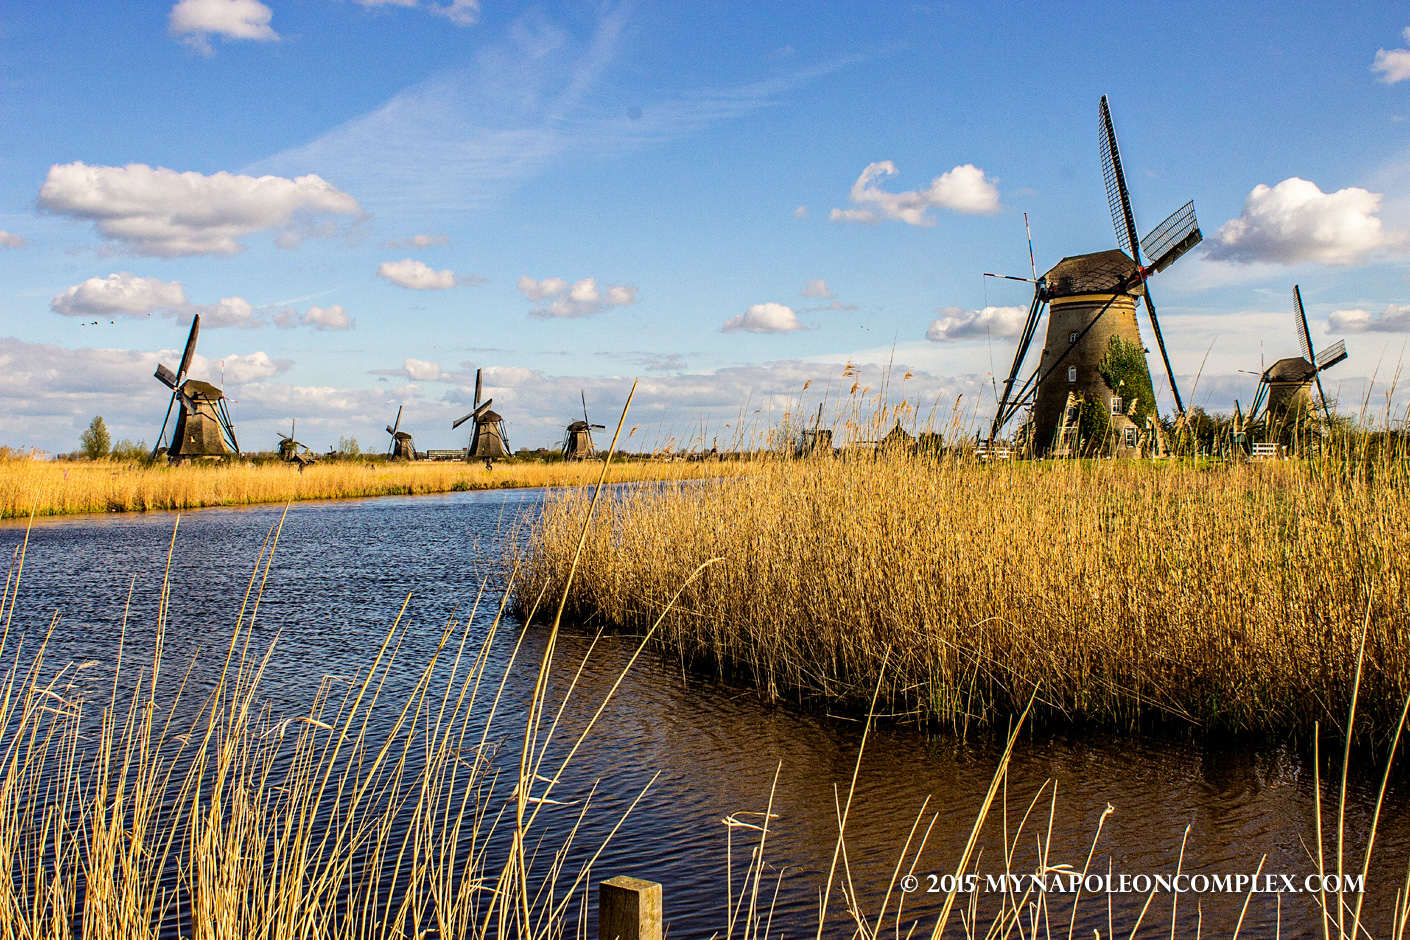 Kinderdijk Windmills: a World Heritage Site of the Netherlands